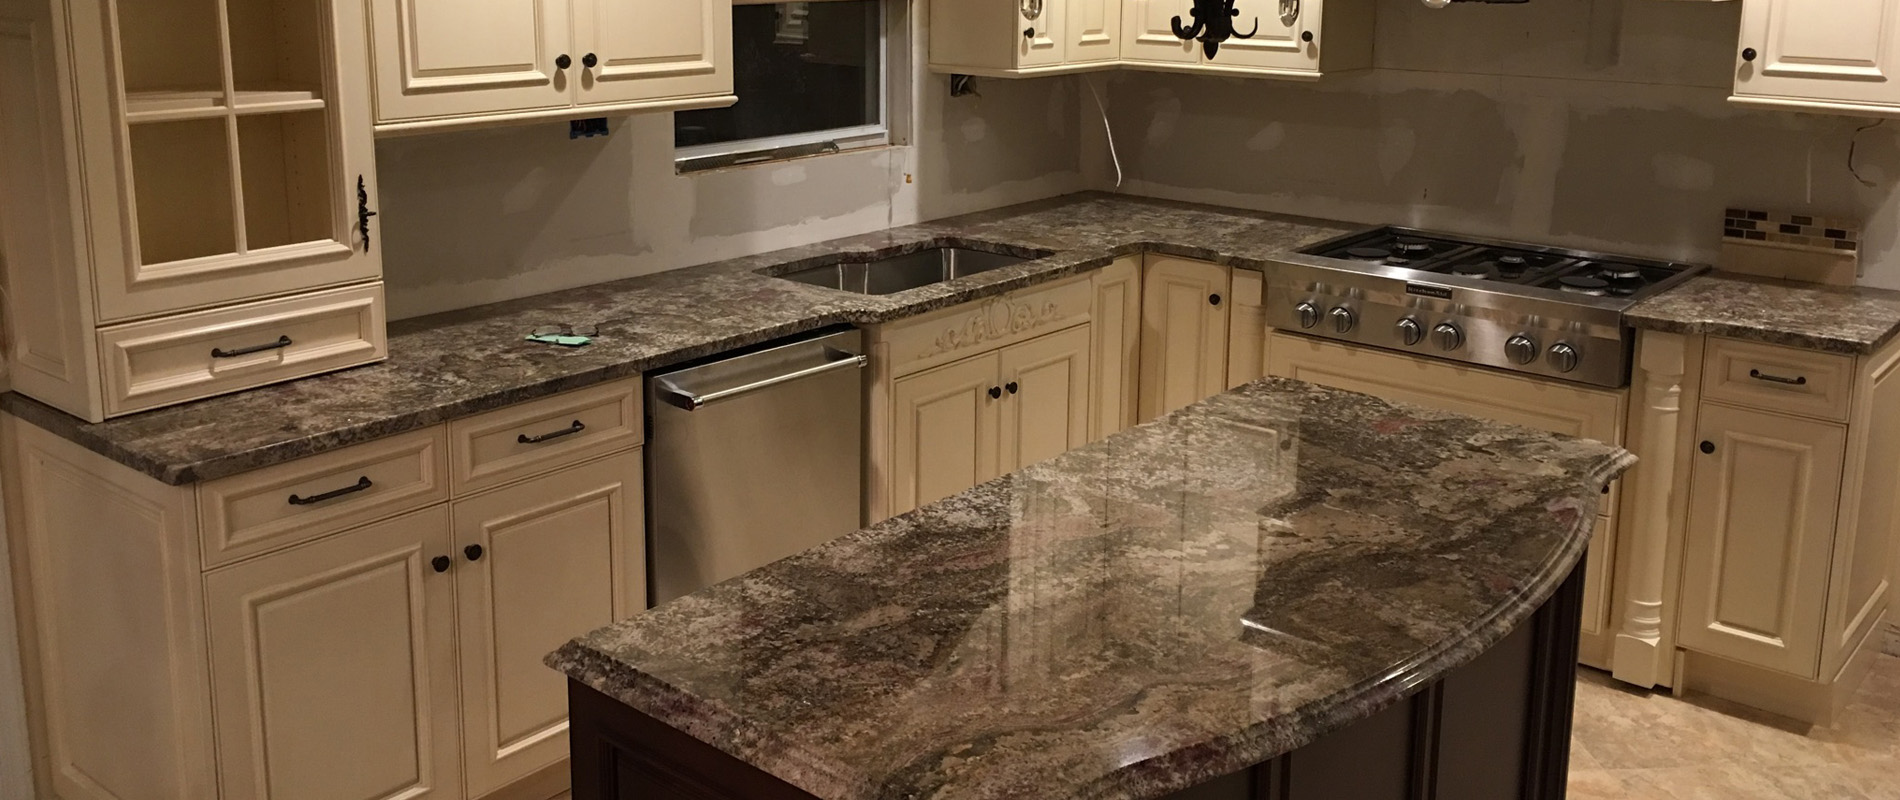 san home design diego countertop granit granite prefab ideas countertops